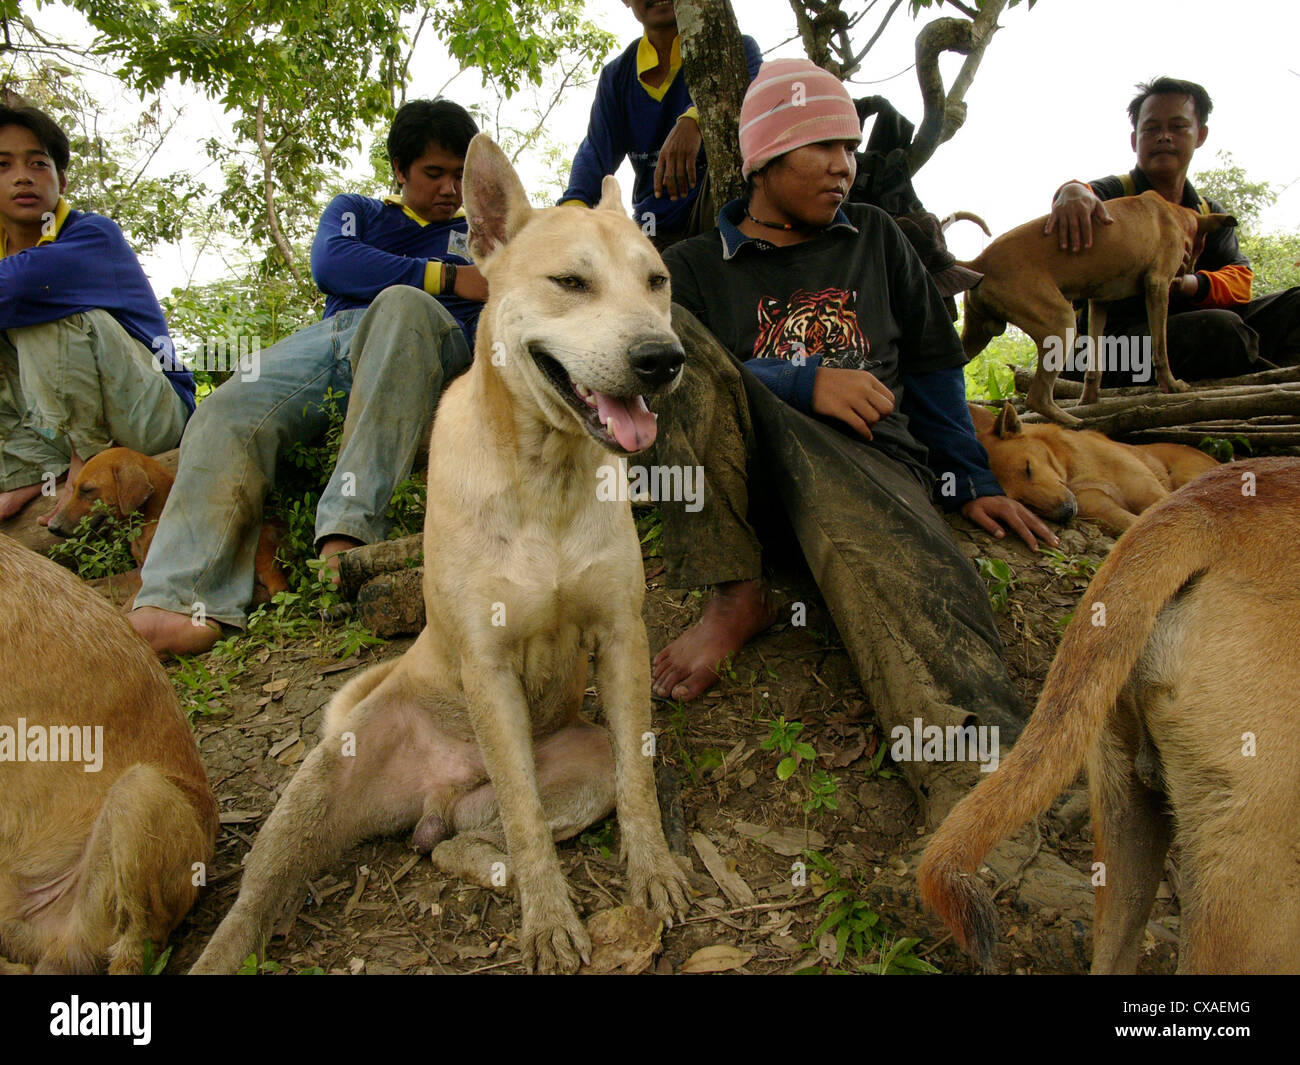 Members of a dog club rest with their hunting dogs as they search for wild boar in the jungles of West Java, Indonesia. - Stock Image